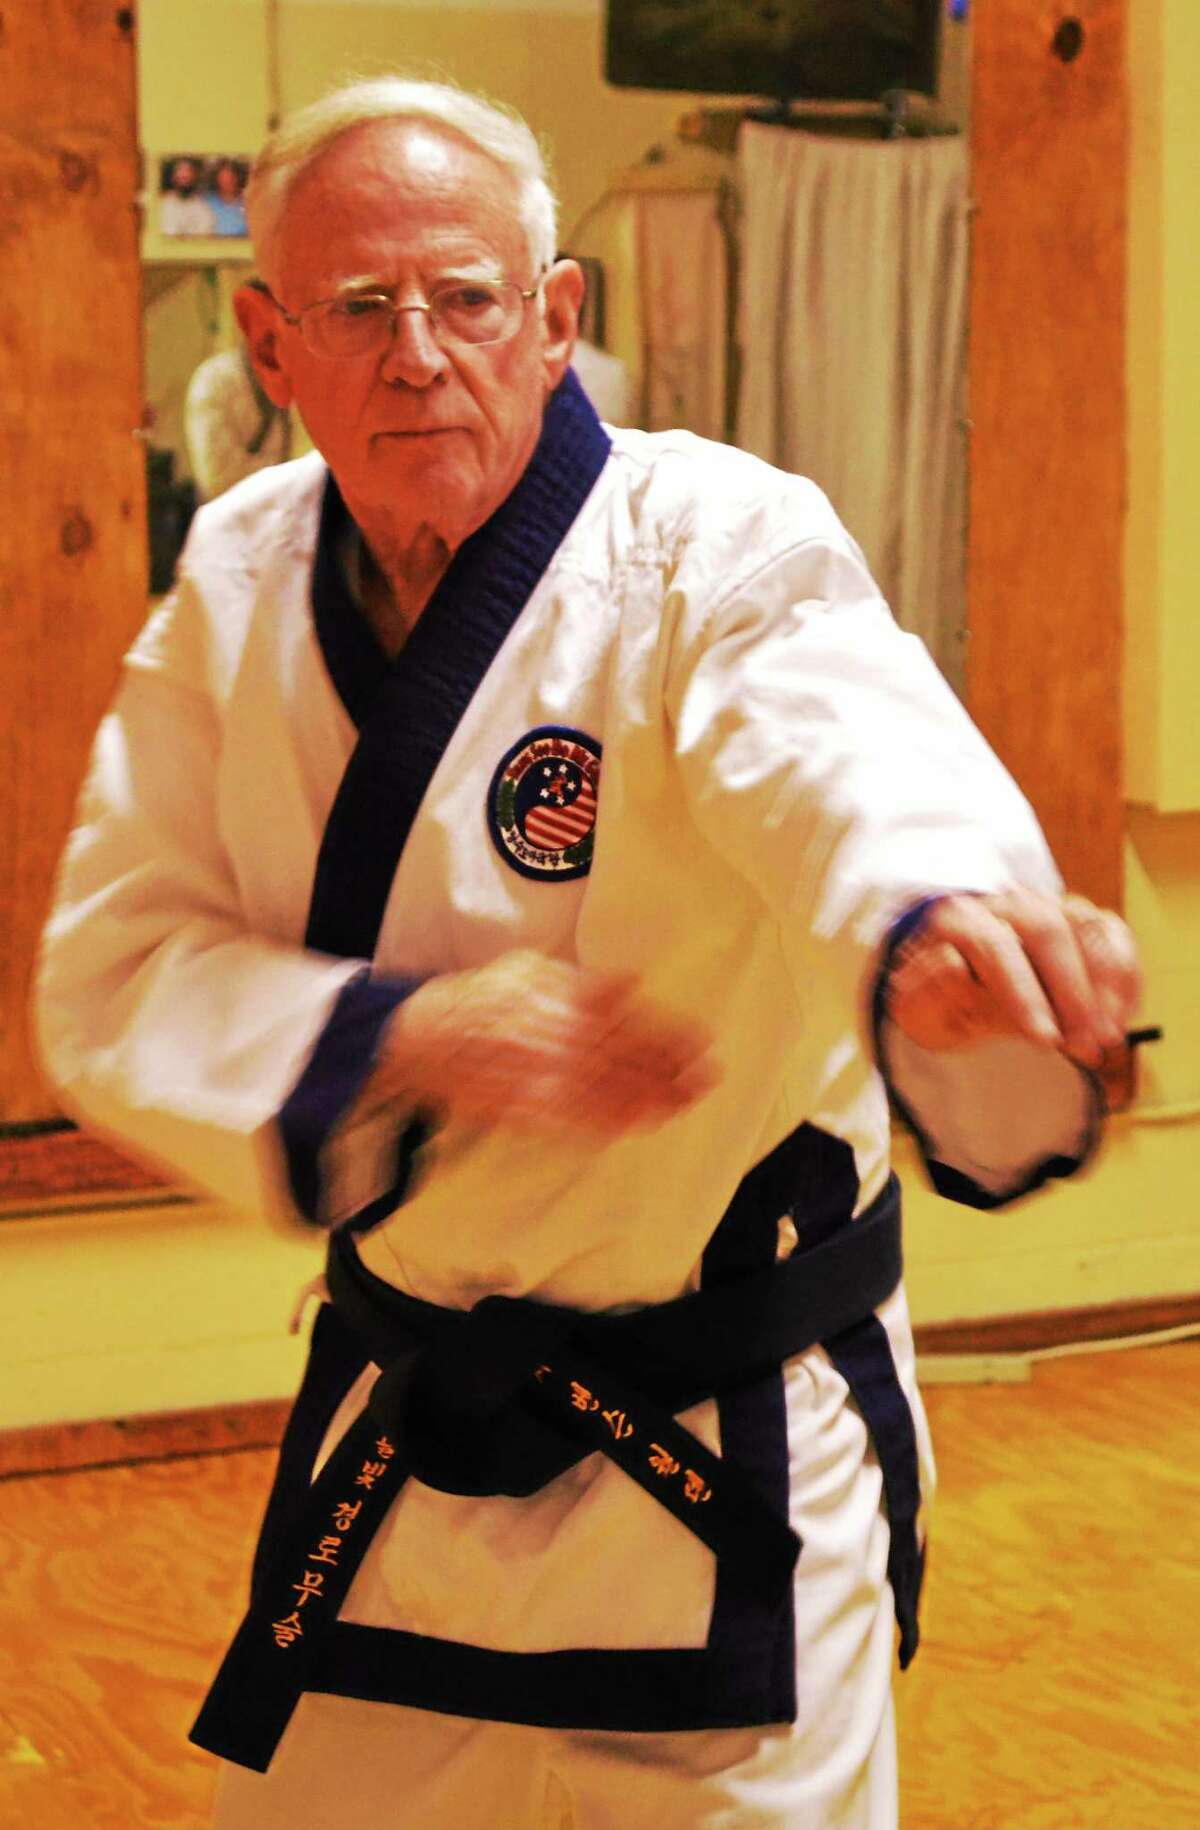 George Benson Werthan practices a Tang Soo Do move at Moonlit Path Martial Arts in Branford.